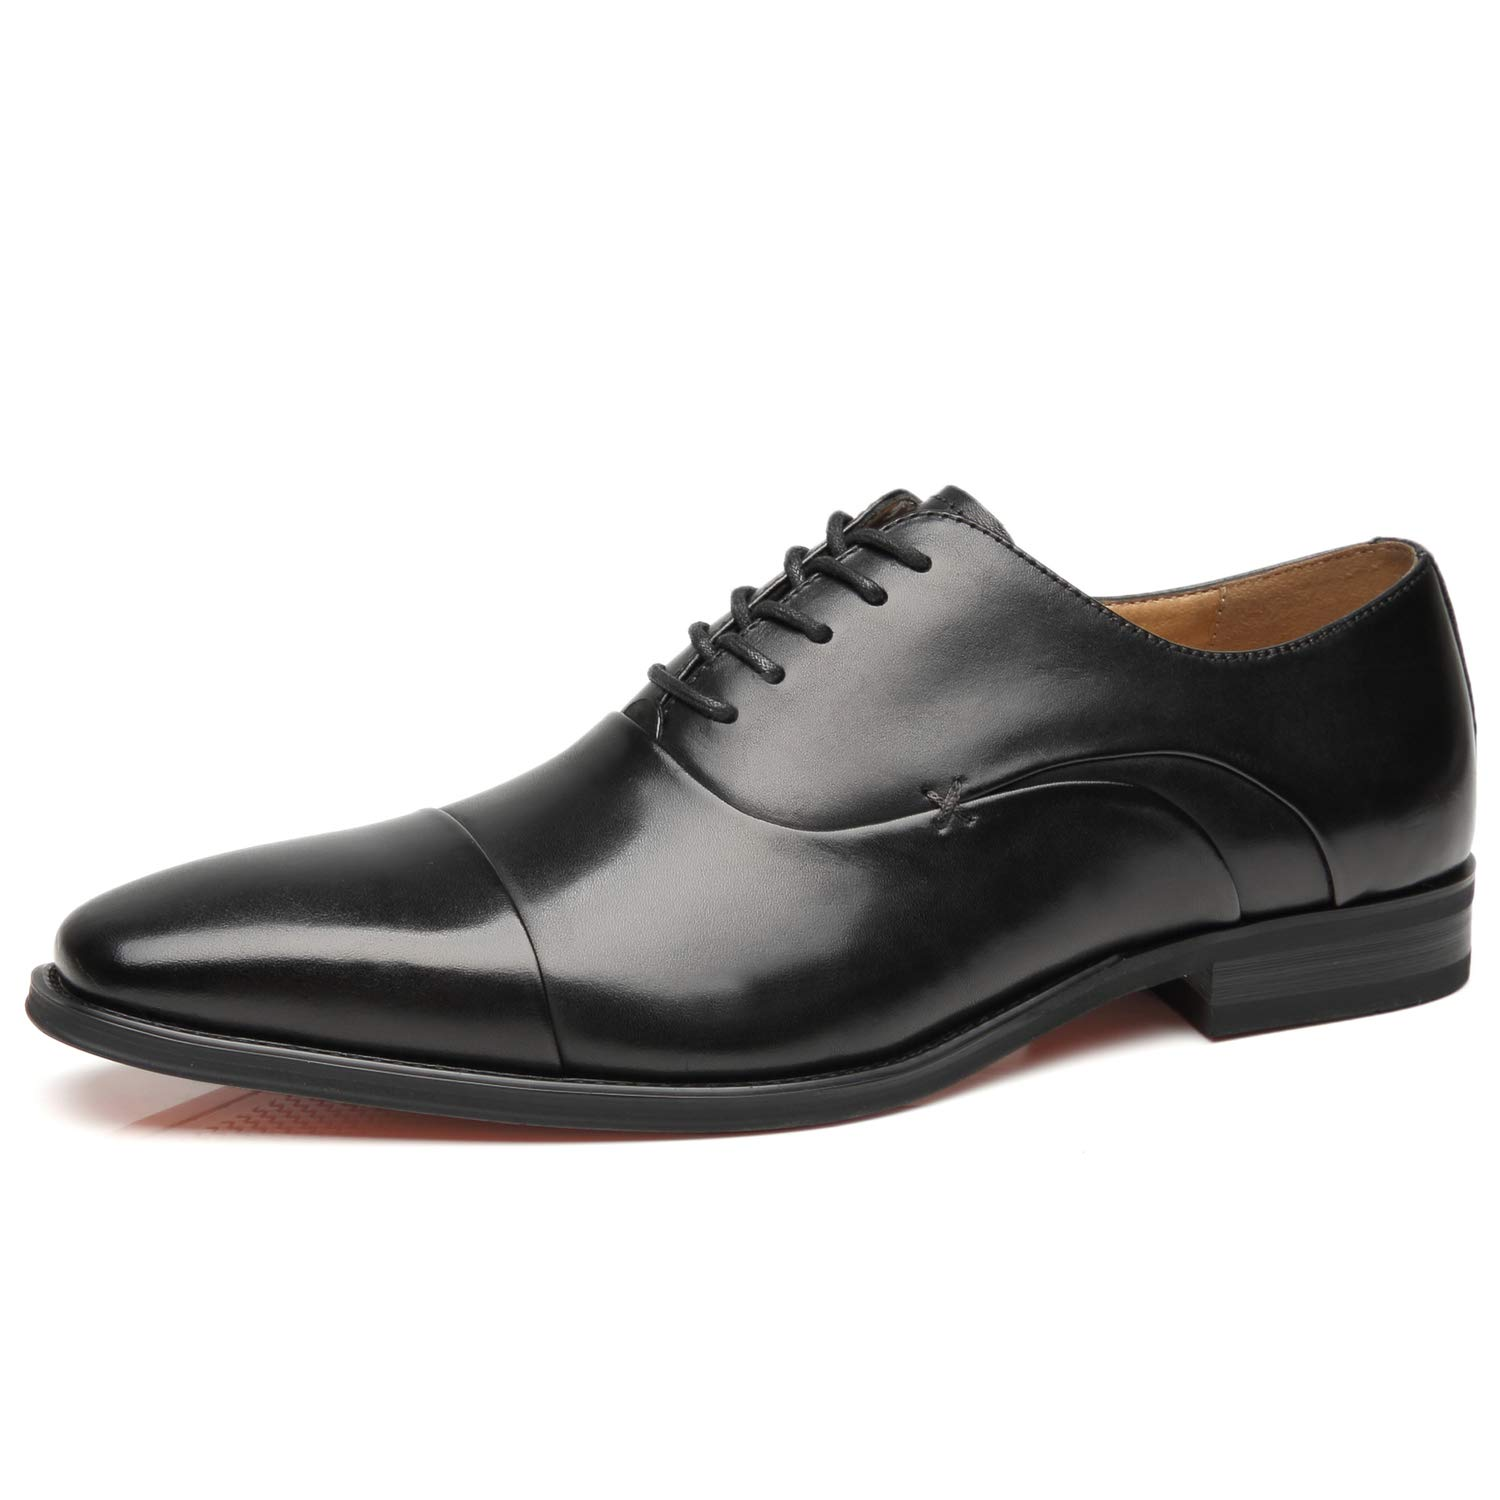 fafe8861 Amazon.com | La Milano Mens Cap Toe Oxford Leather Lace Up Classic  Comfortable Modern Formal Business Dress Shoes for Men | Oxfords